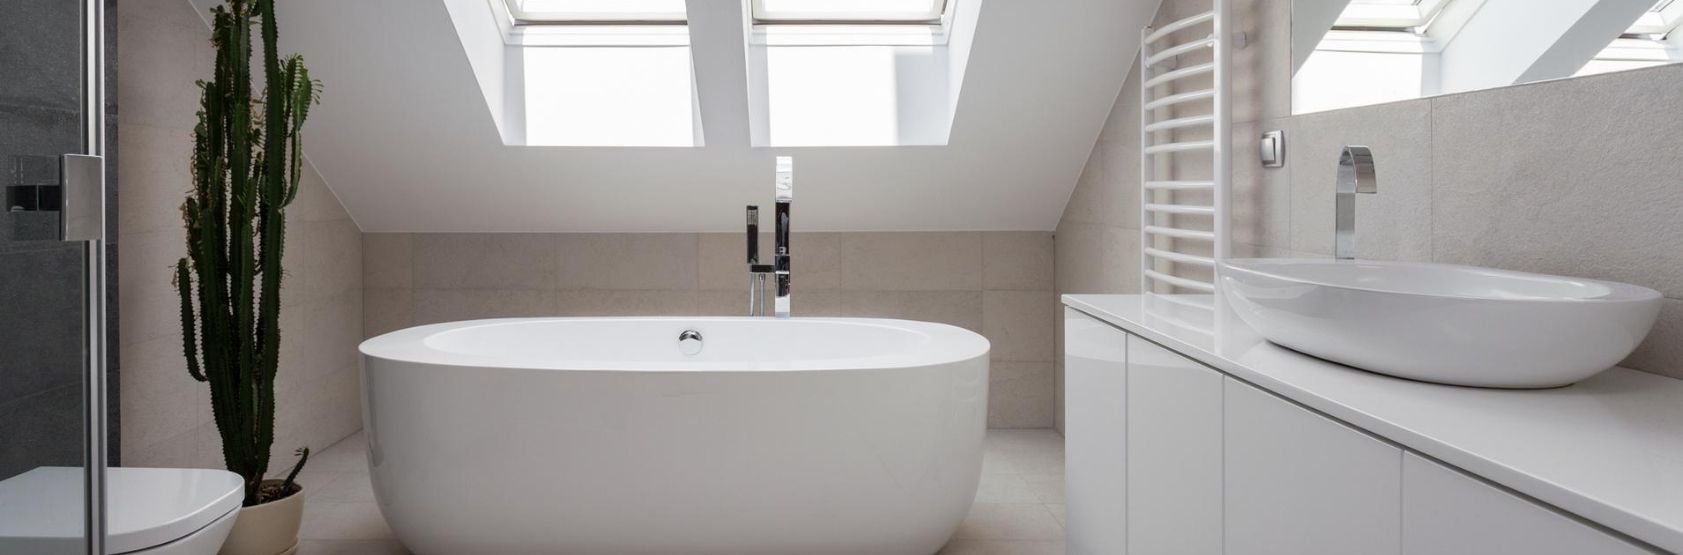 Bathroom-Fitting-Services-Dorset-Hampshire_1